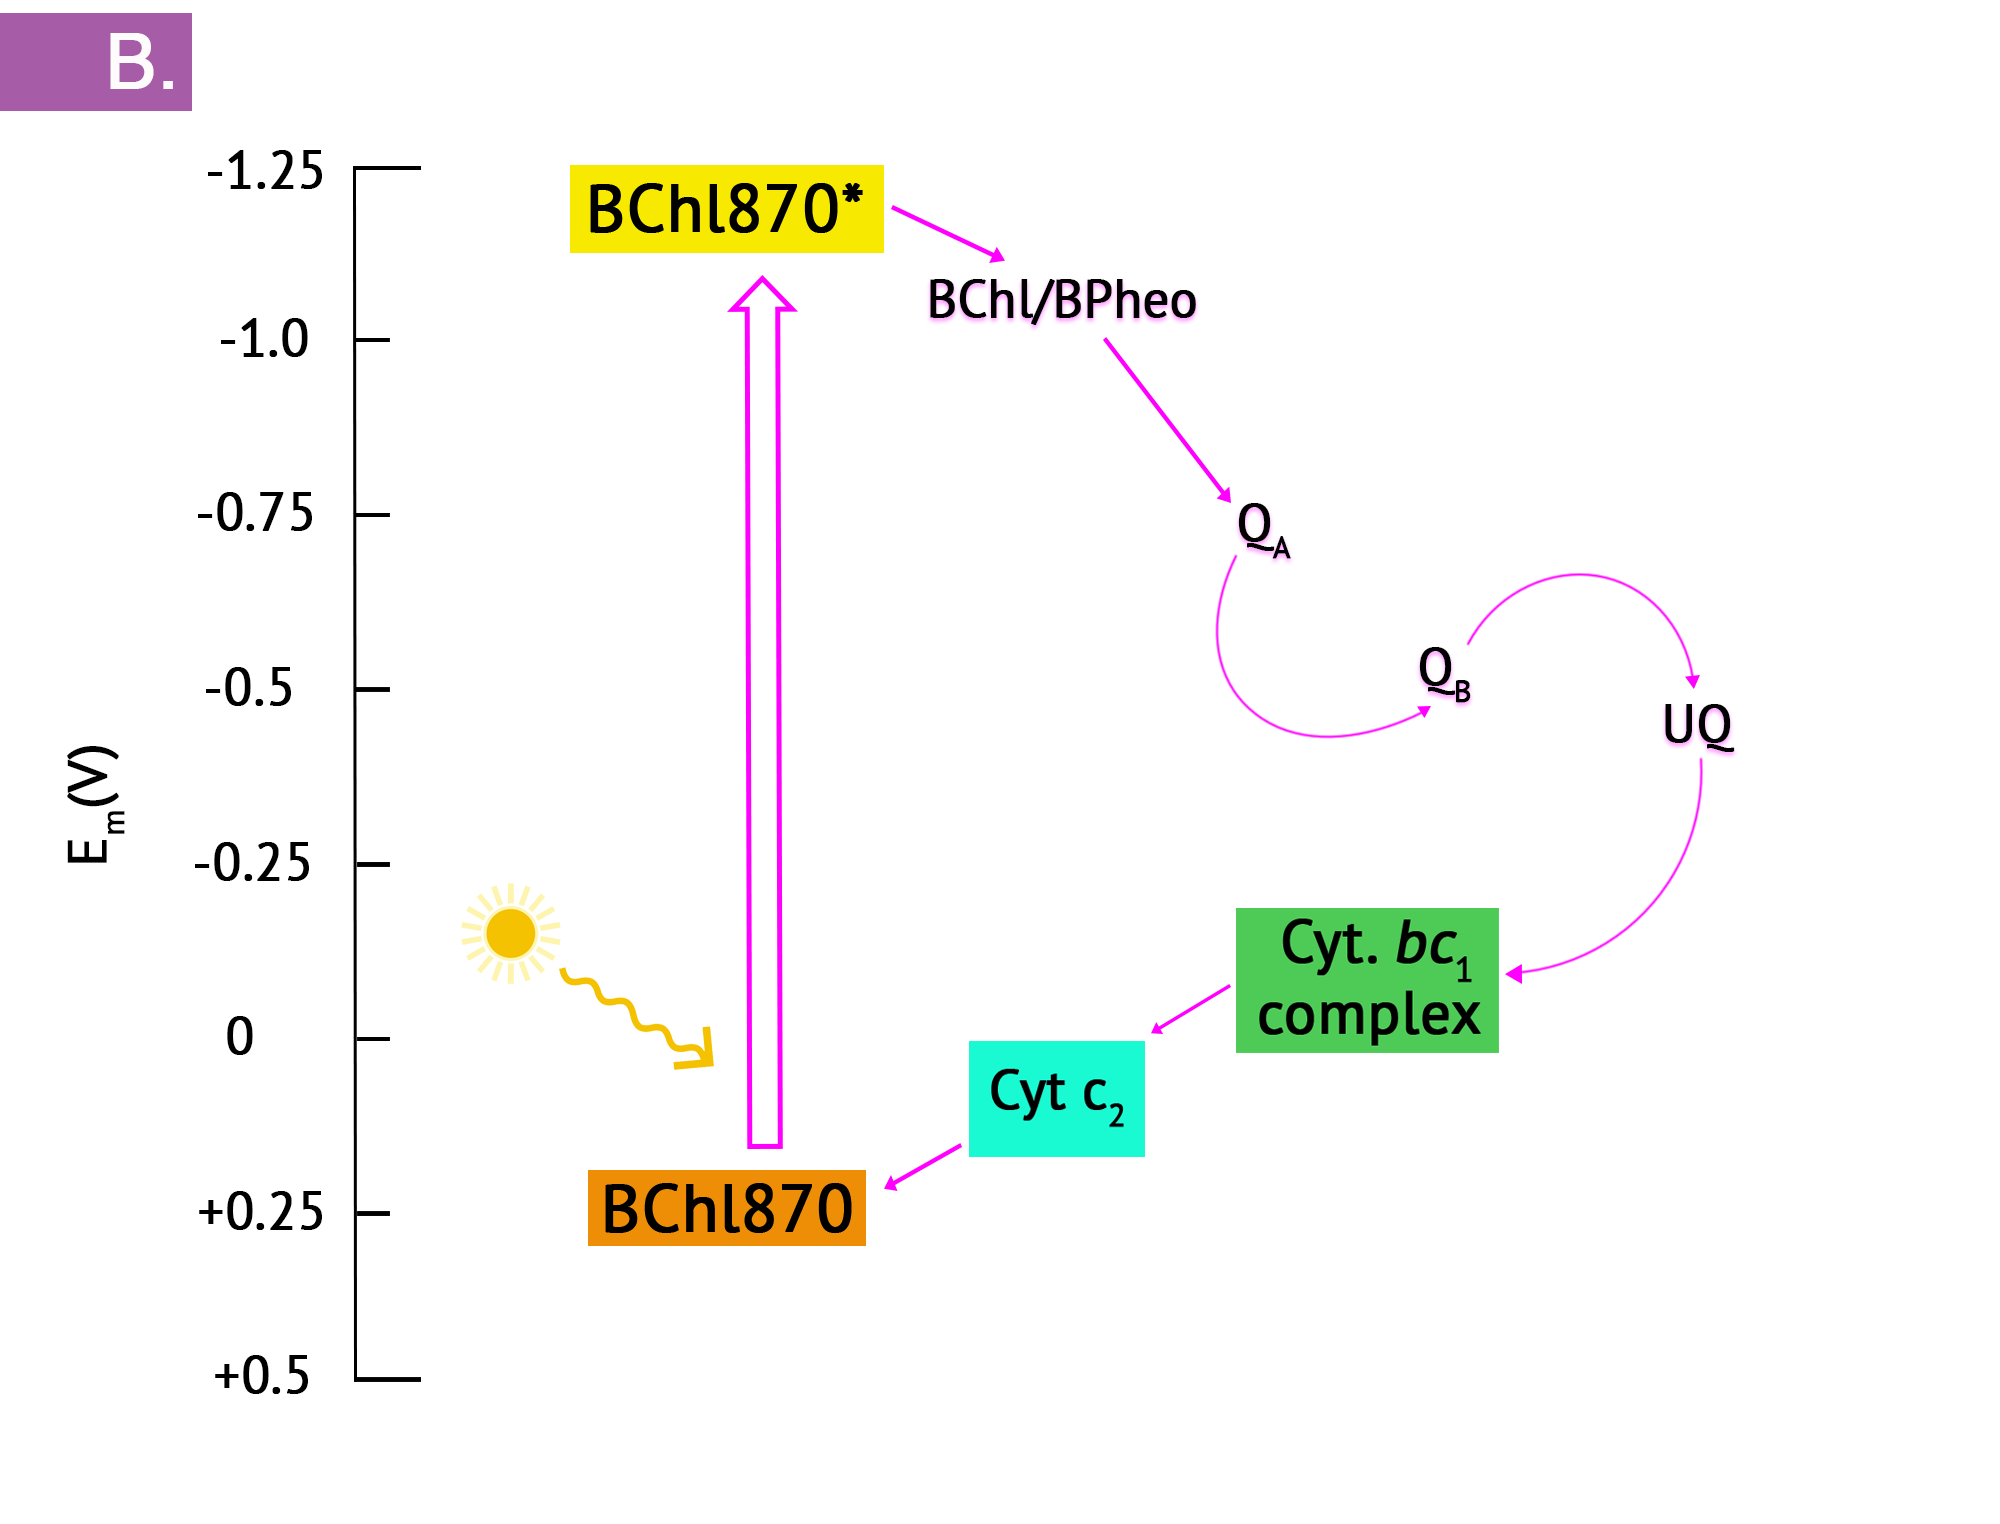 Panel B shows the sequence of changes in redox potential, beginning with photoexcitation of the reaction centre bacteriochlorophyll, leading to a strong reduction potential. Electrons enter the ETS, flowing in an exergonic direction until they cycle back to the reaction centre in cyclic photosynthesis.